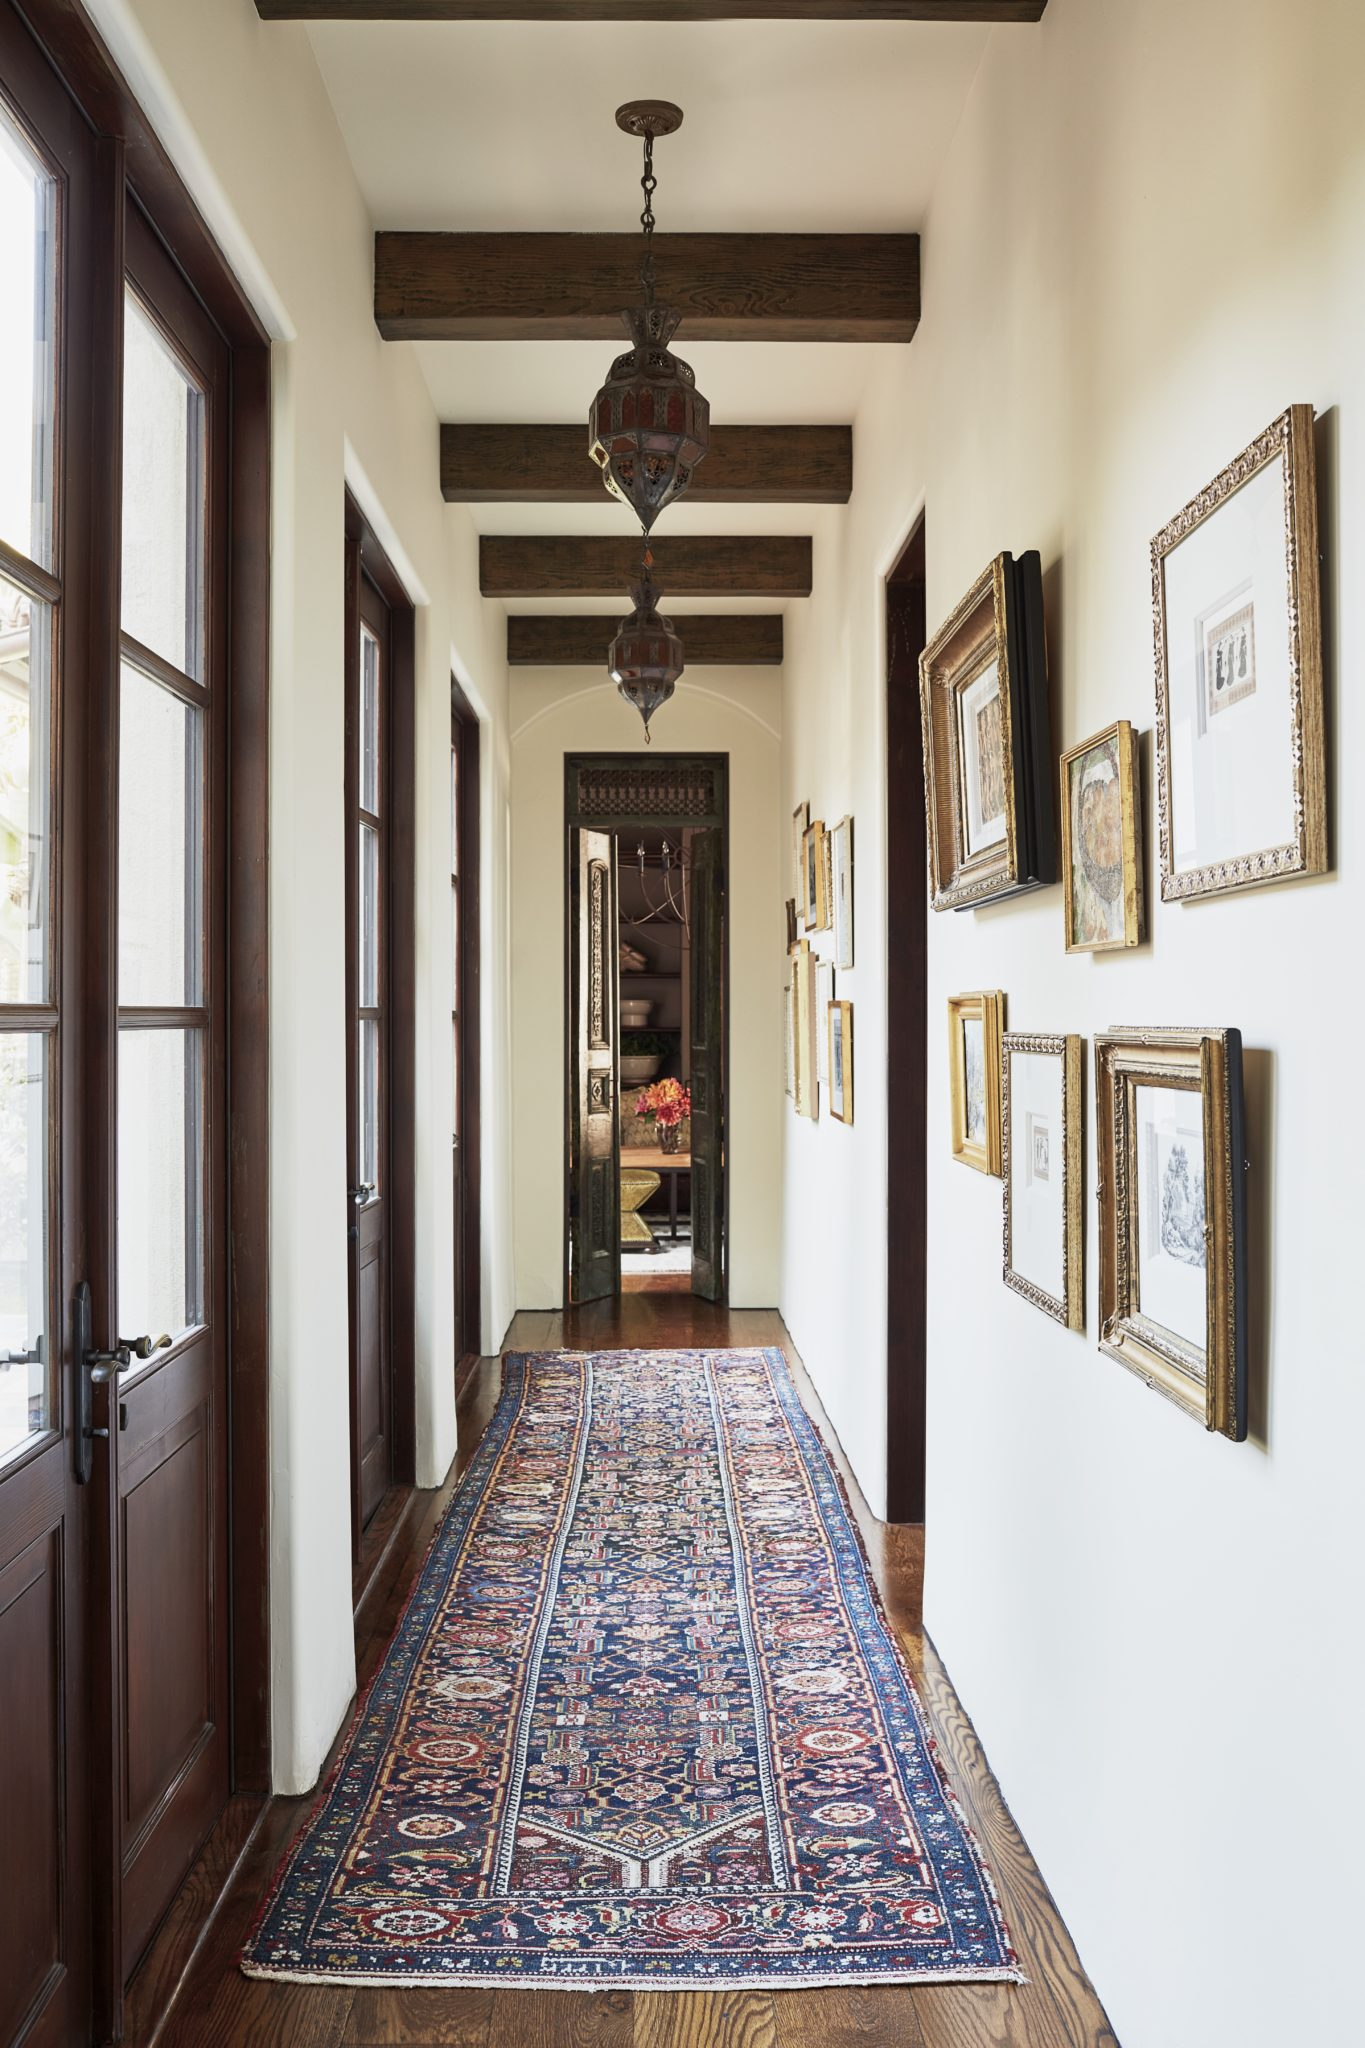 Malibu Spanish Colonial, Hallway Gallery with French Doors, Fine Art & Antiques by Interior Archaeology